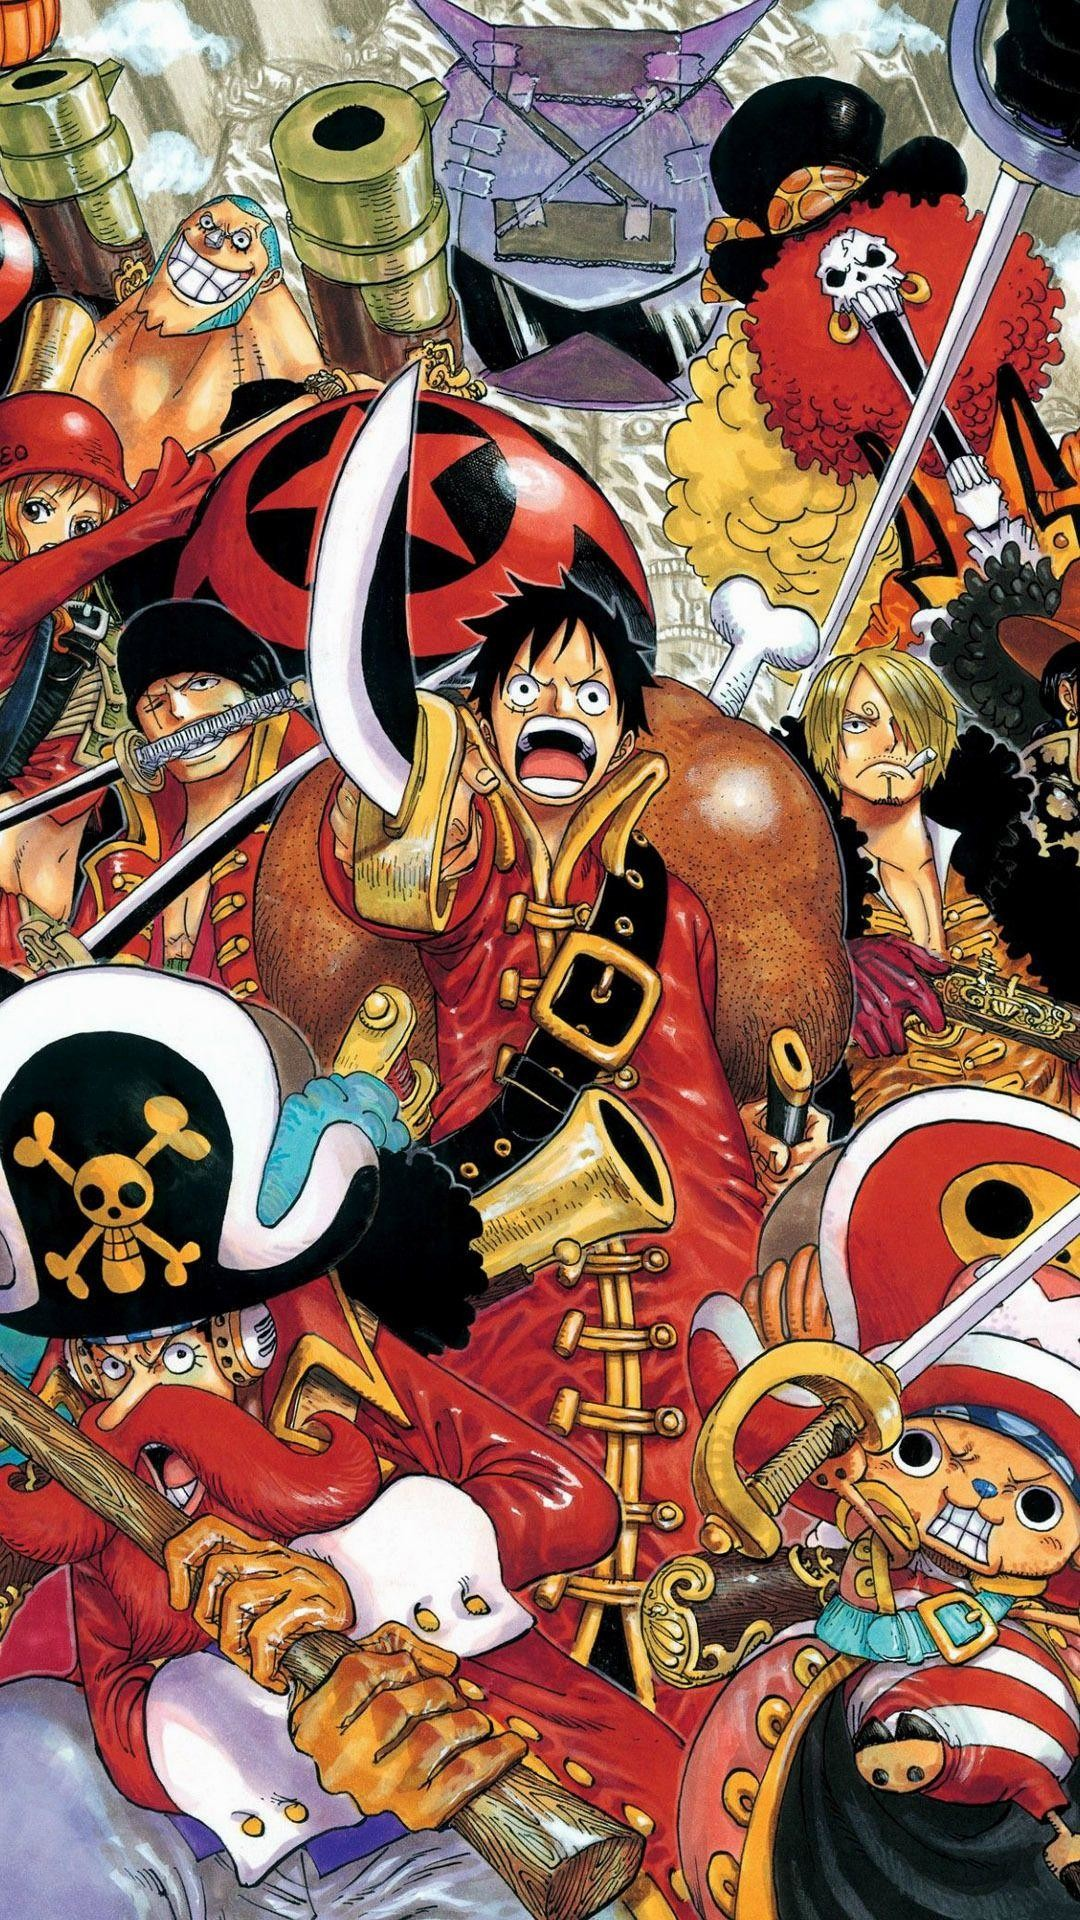 Wiki Download One Piece Iphone Background Free   Data - One Piece Wallpaper Vertical - HD Wallpaper